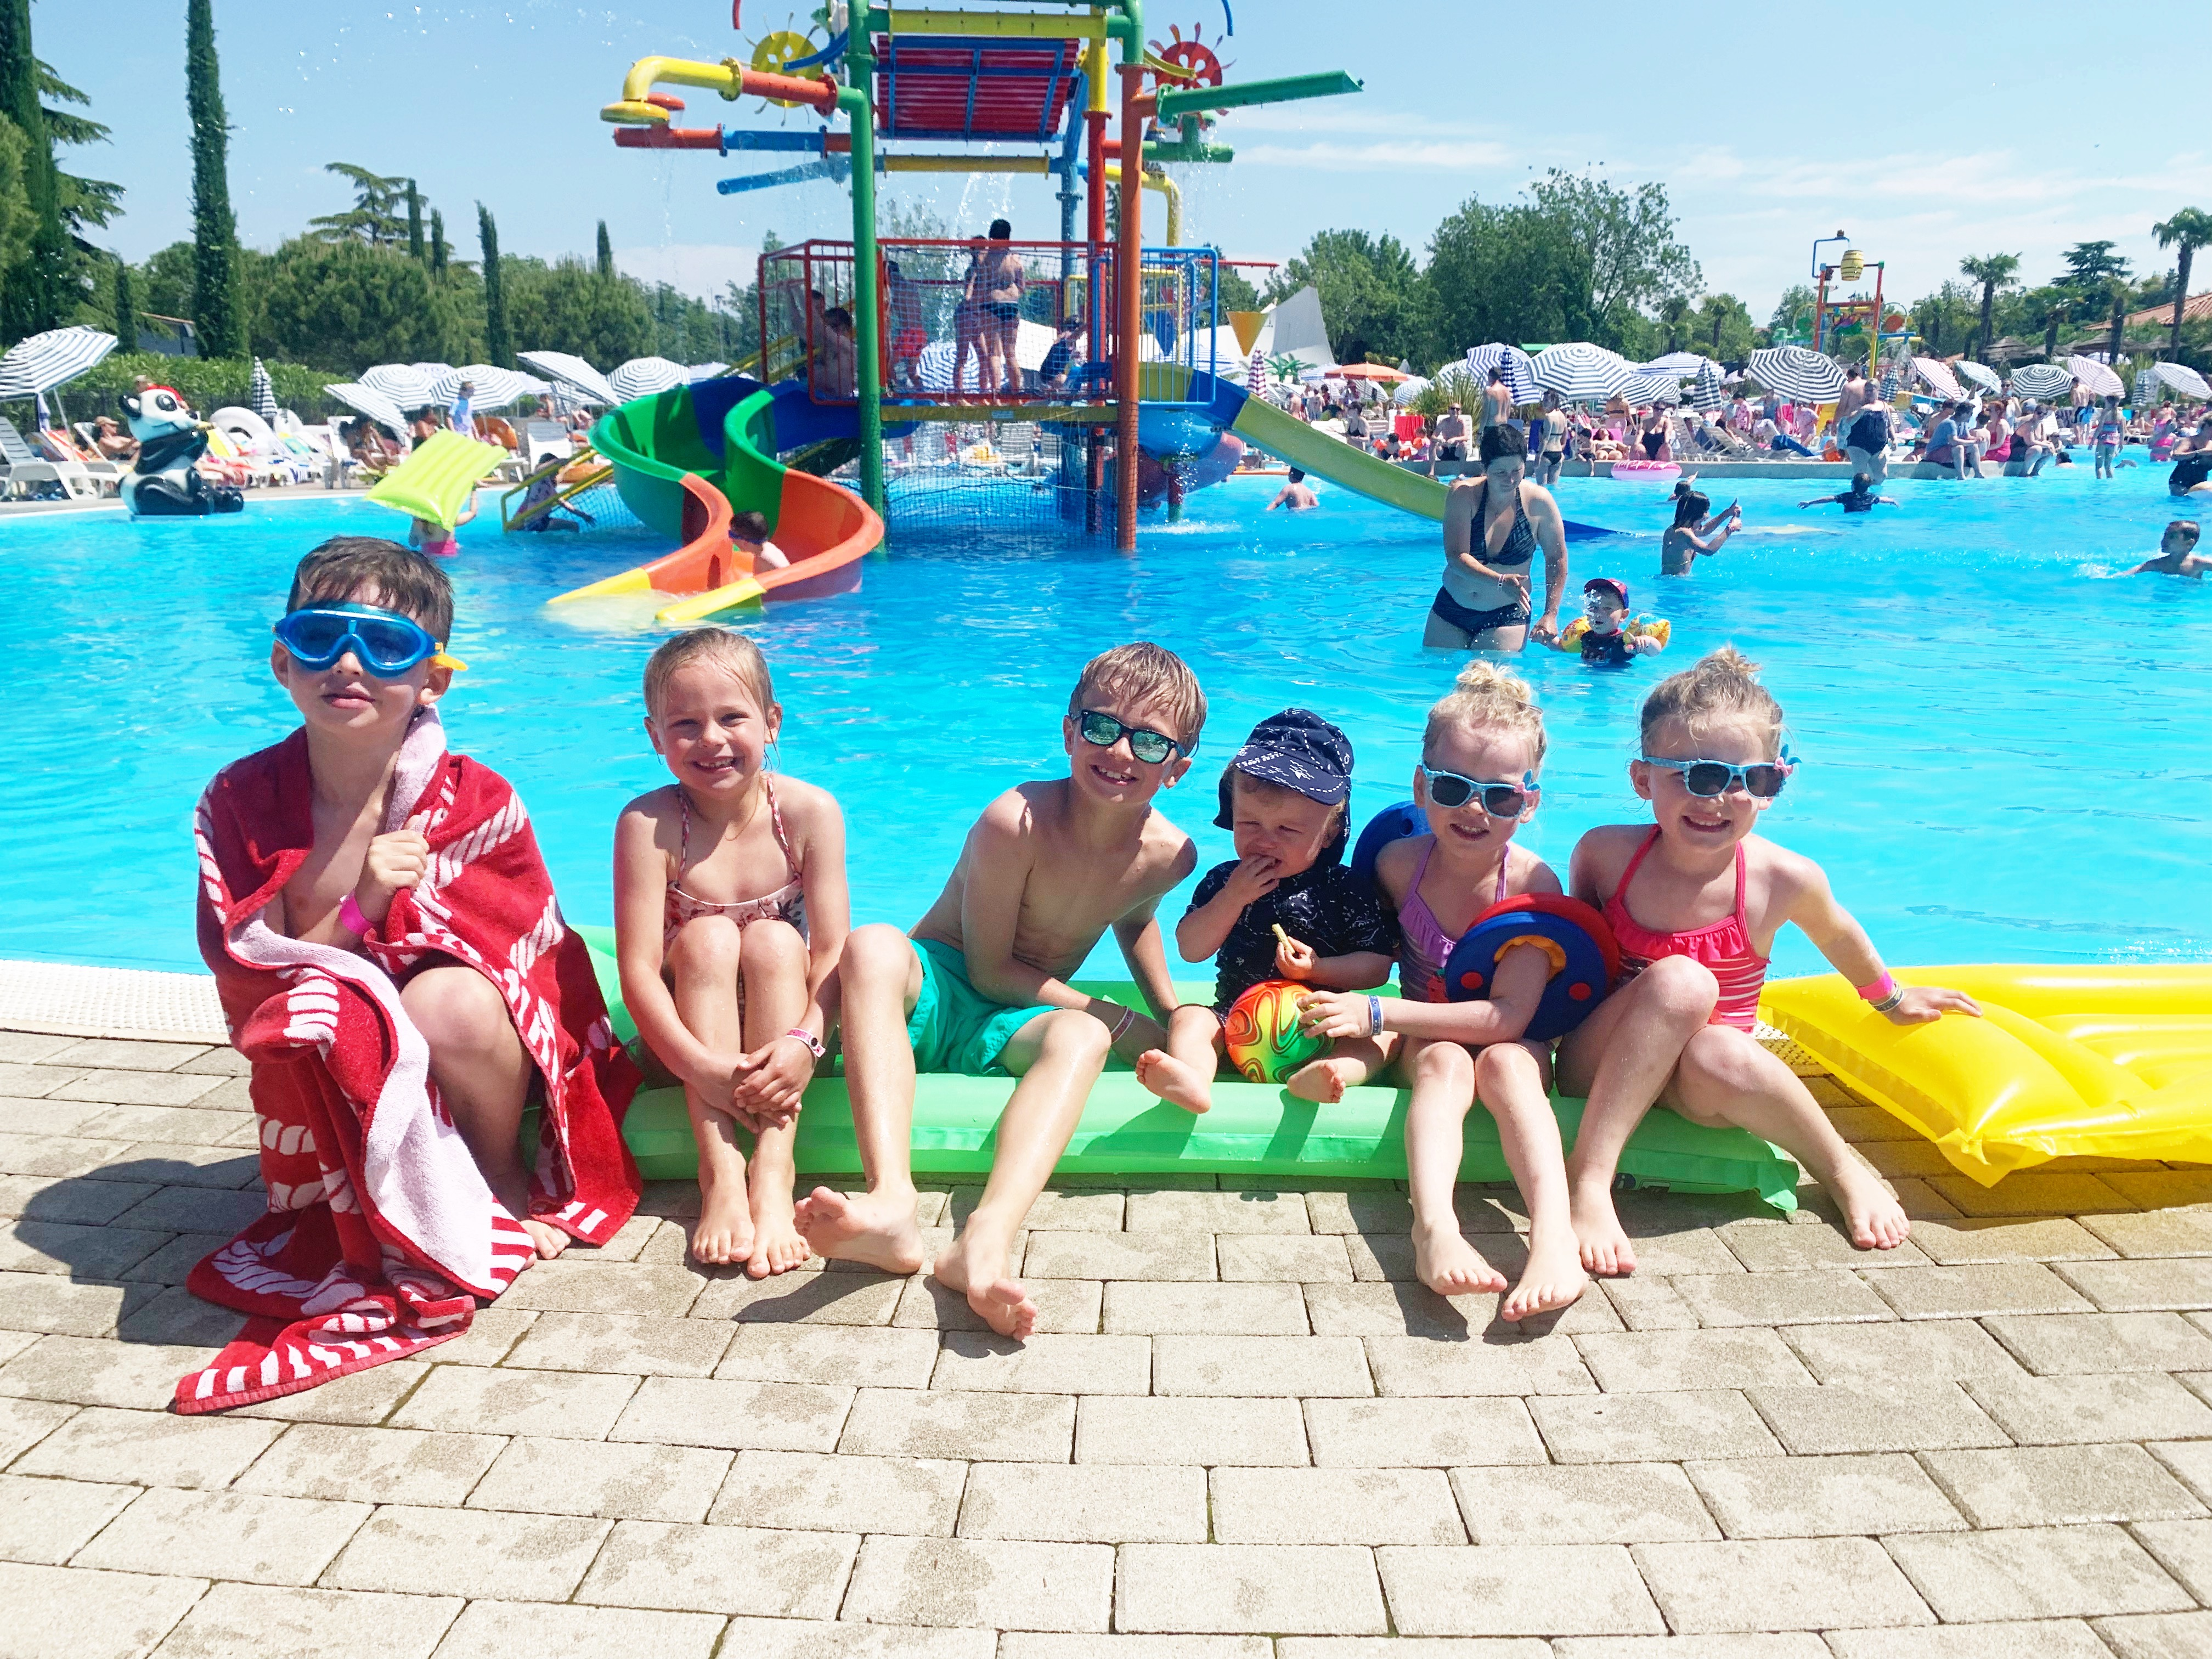 A group of children sit on the edge of a pool in Bella Italia Eurocamp. The waterslides are in the background